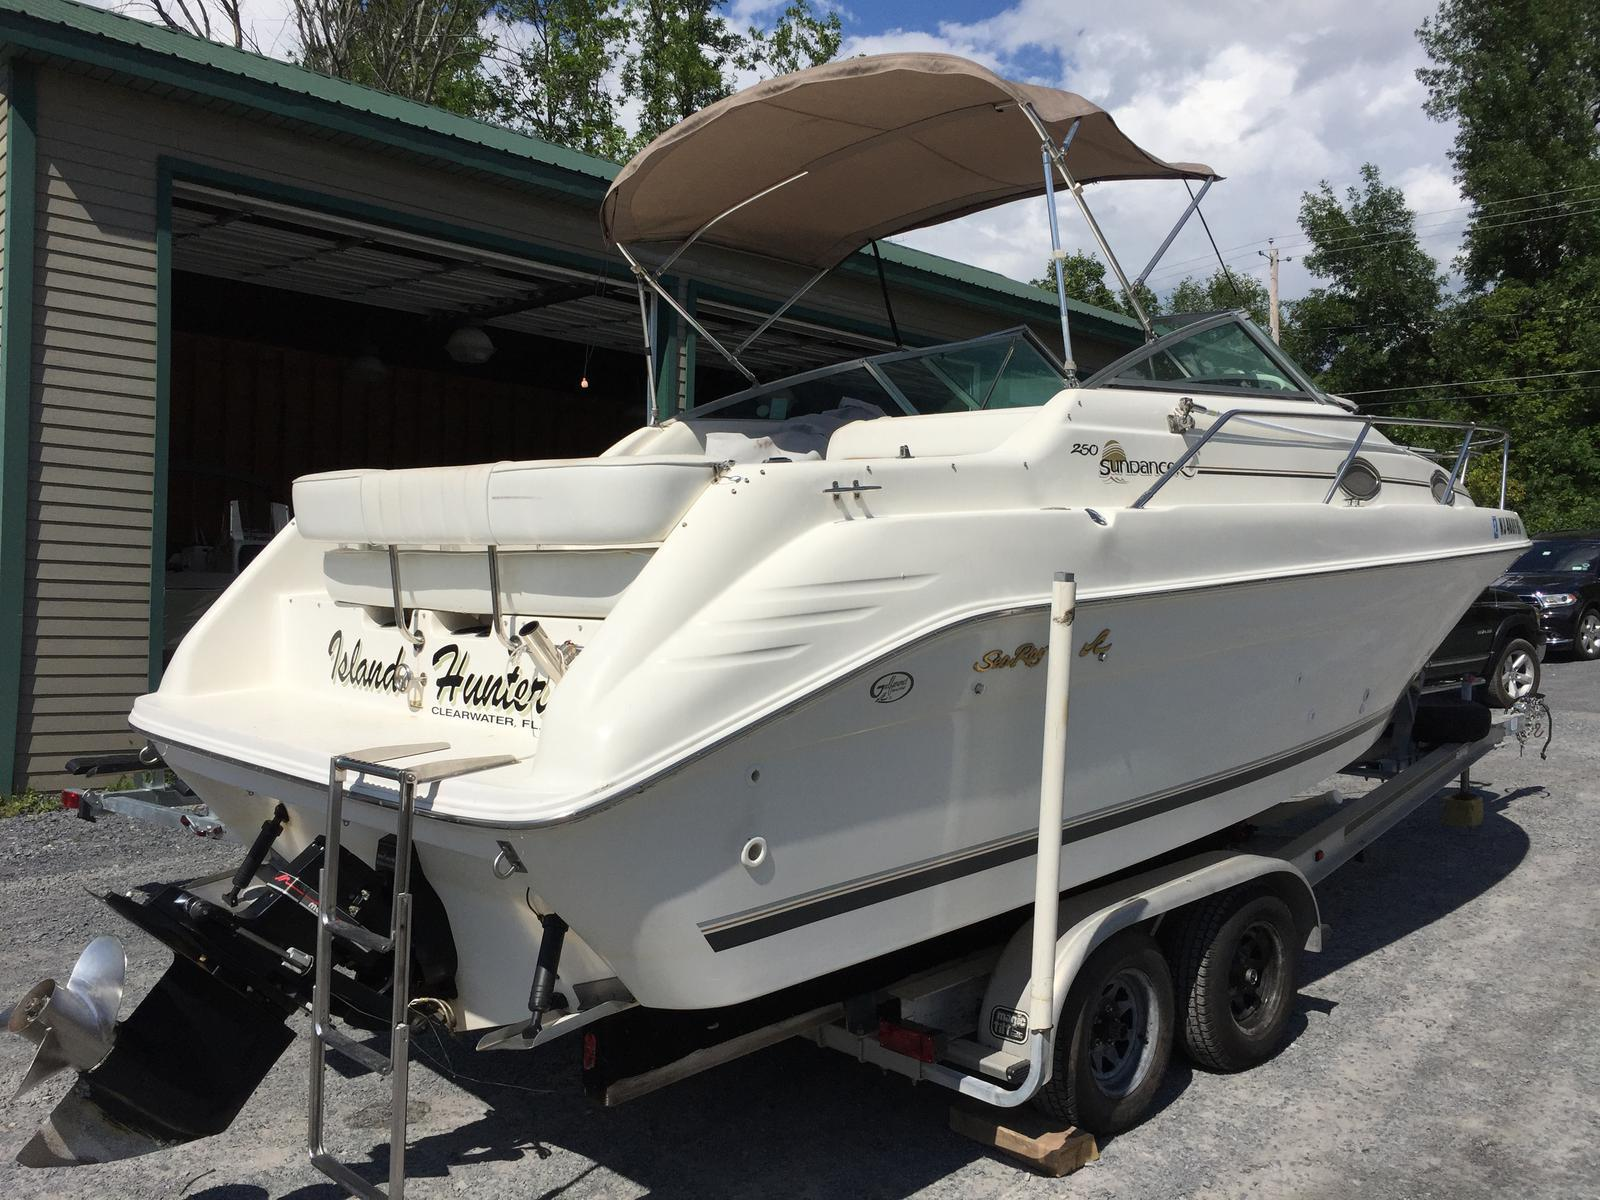 point harbor black personals Baltimore photo/video  black $110 (howard county) pic  favorite this post jun 1 sealife sea dragon 2300 auto photo-video led dive light $275 (harbor point).